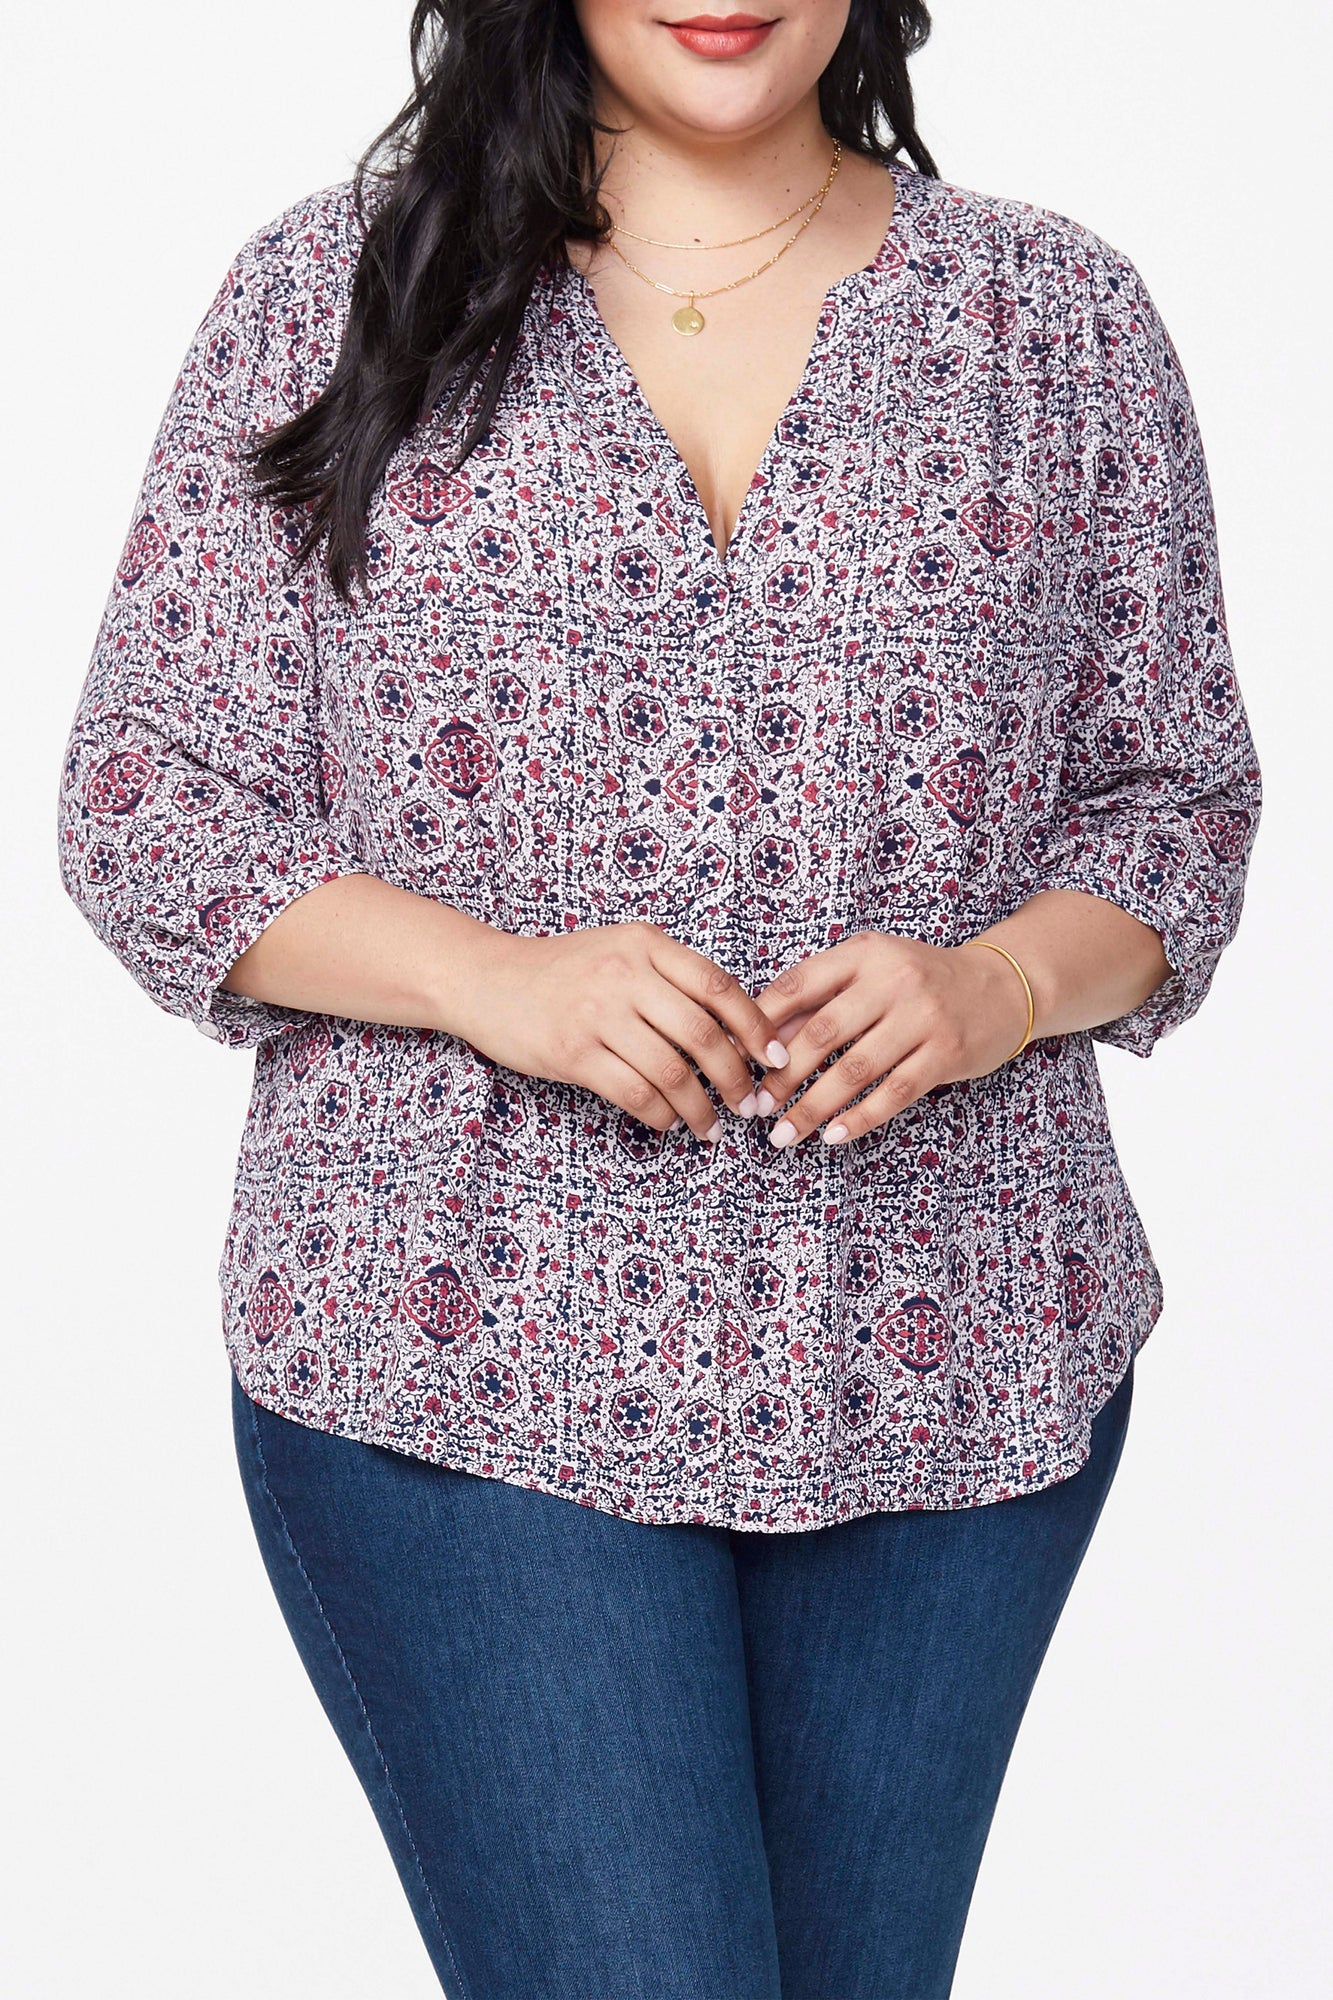 Pintuck Blouse In Plus Size - MOSAIC PINK DUSK